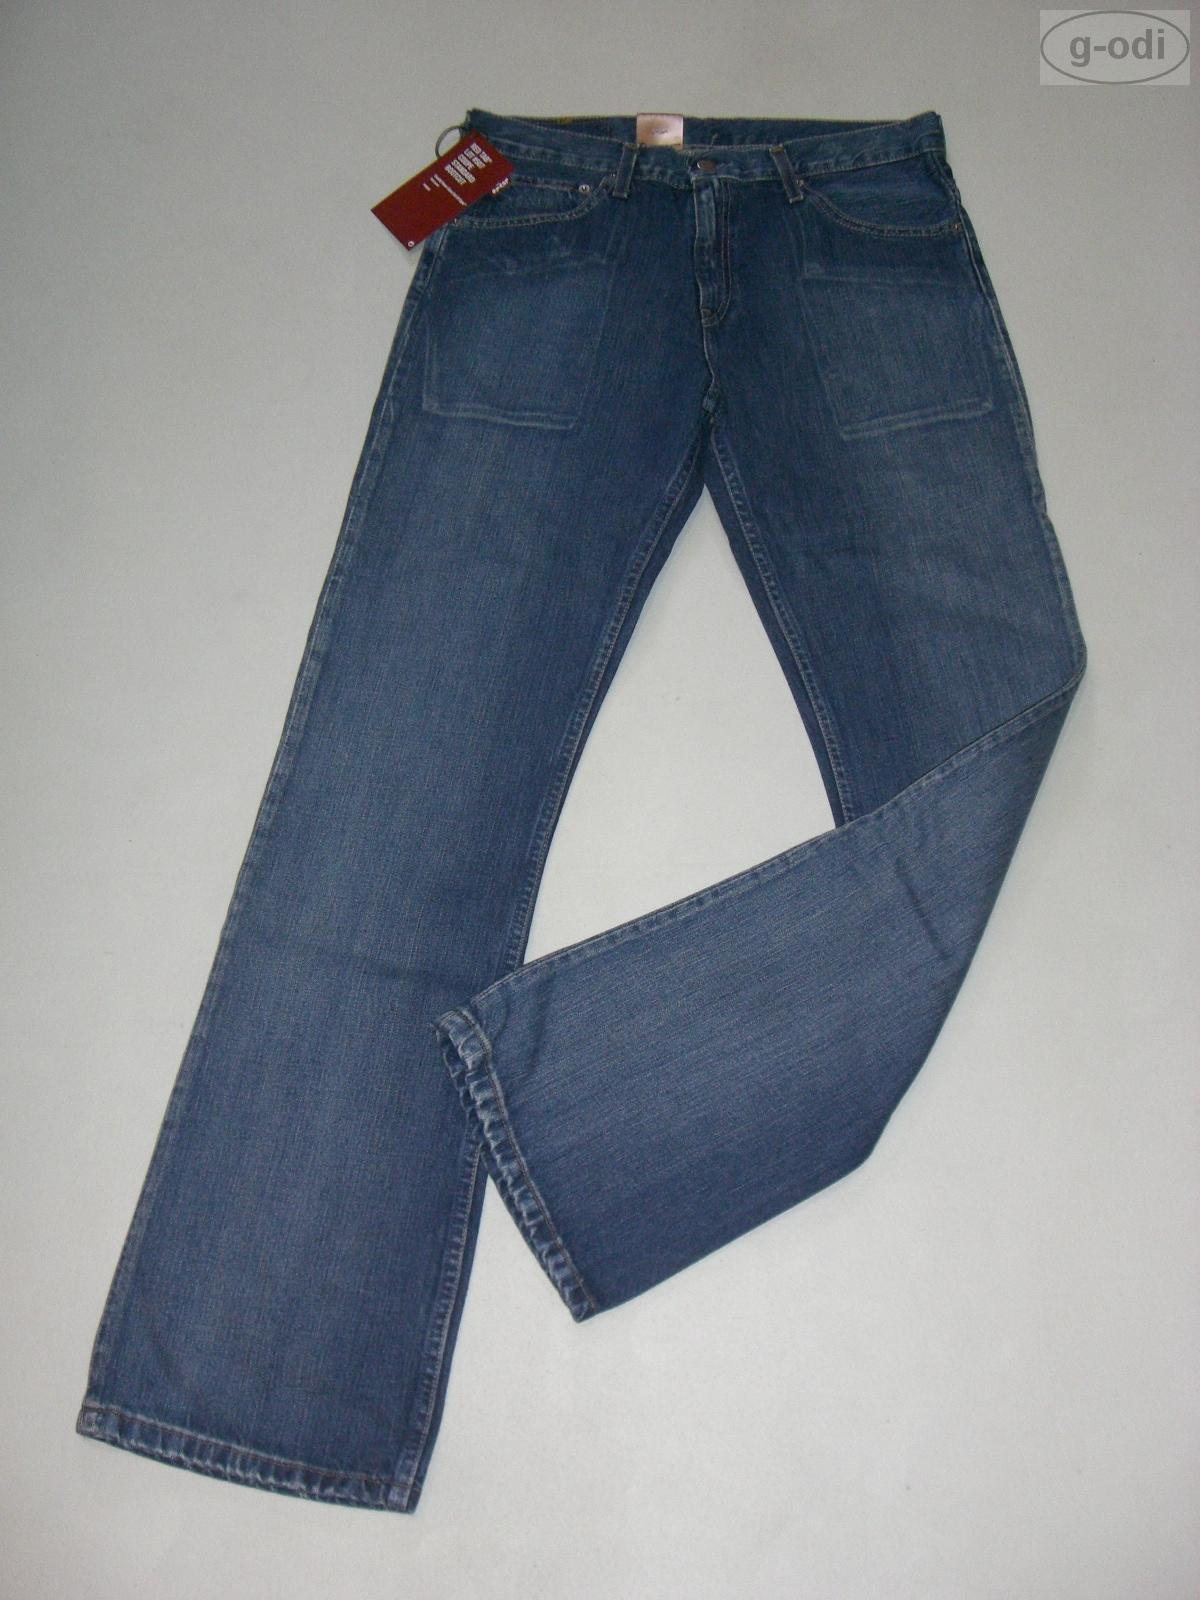 Find great deals on eBay for 30 34 jeans. Shop with confidence.